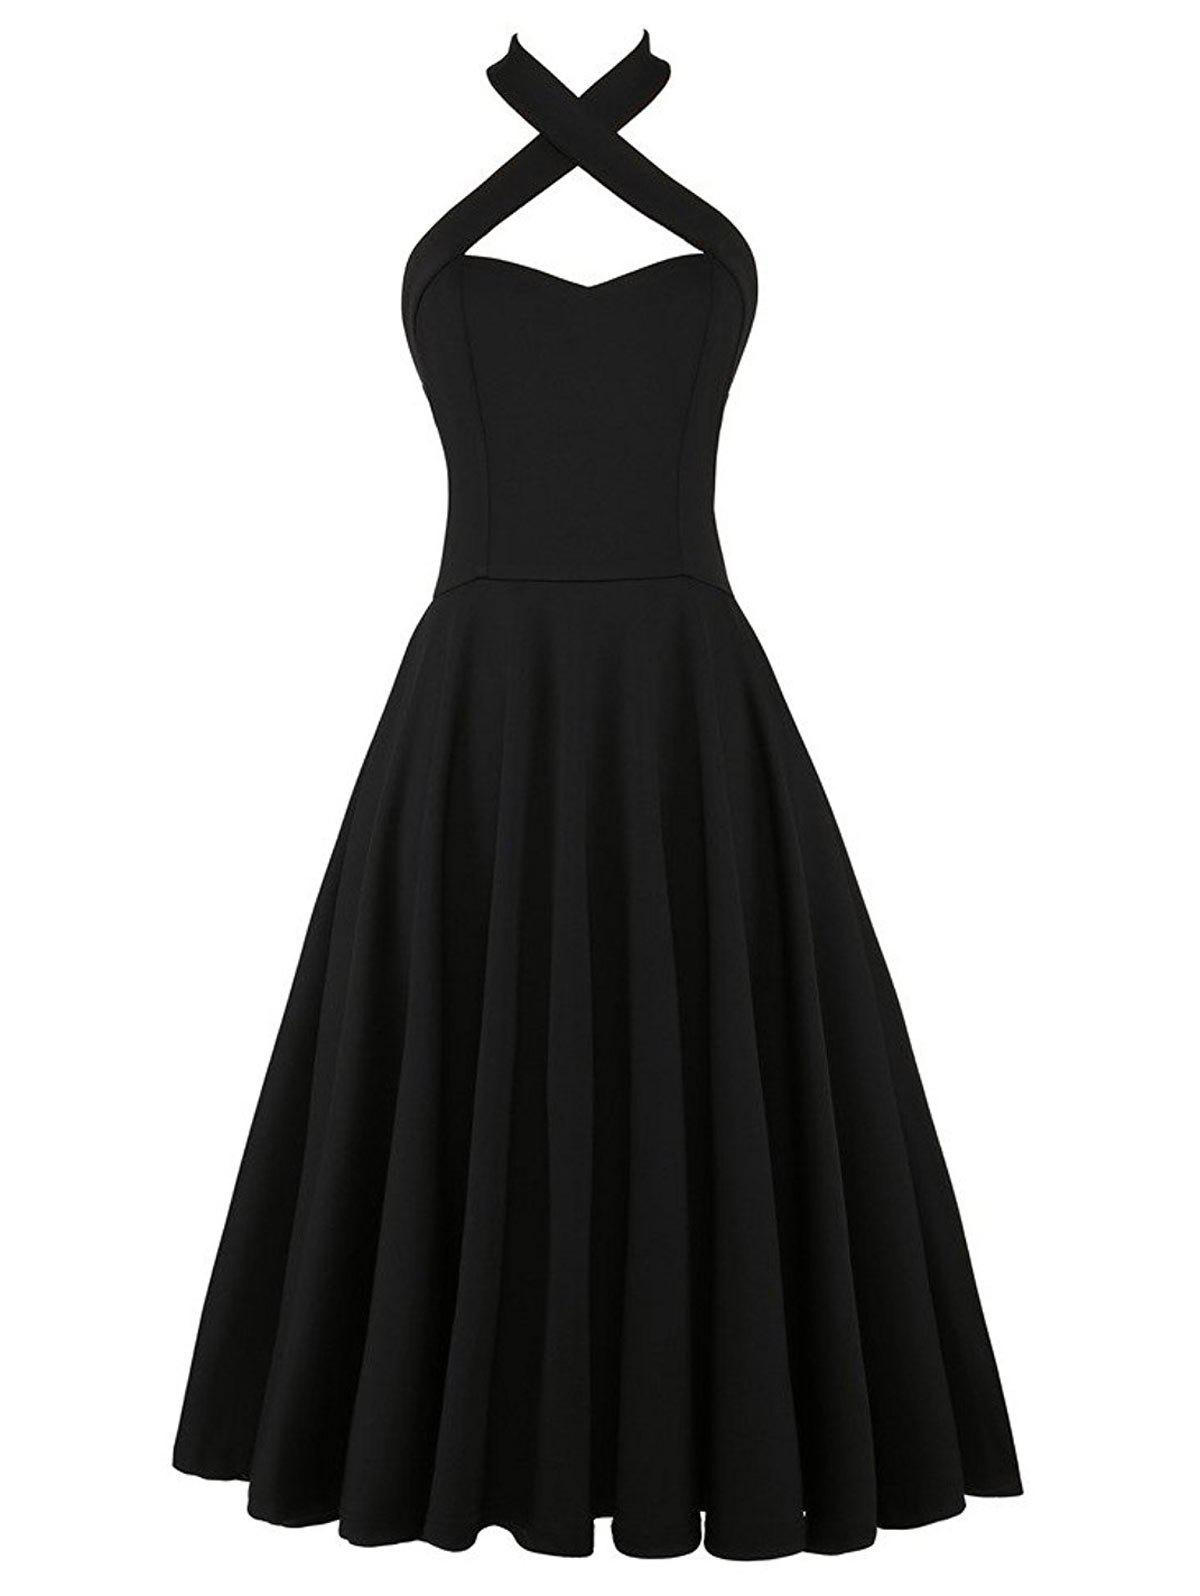 Halter Vintage Criss Cross Swing Pin Up Dress - BLACK 2XL